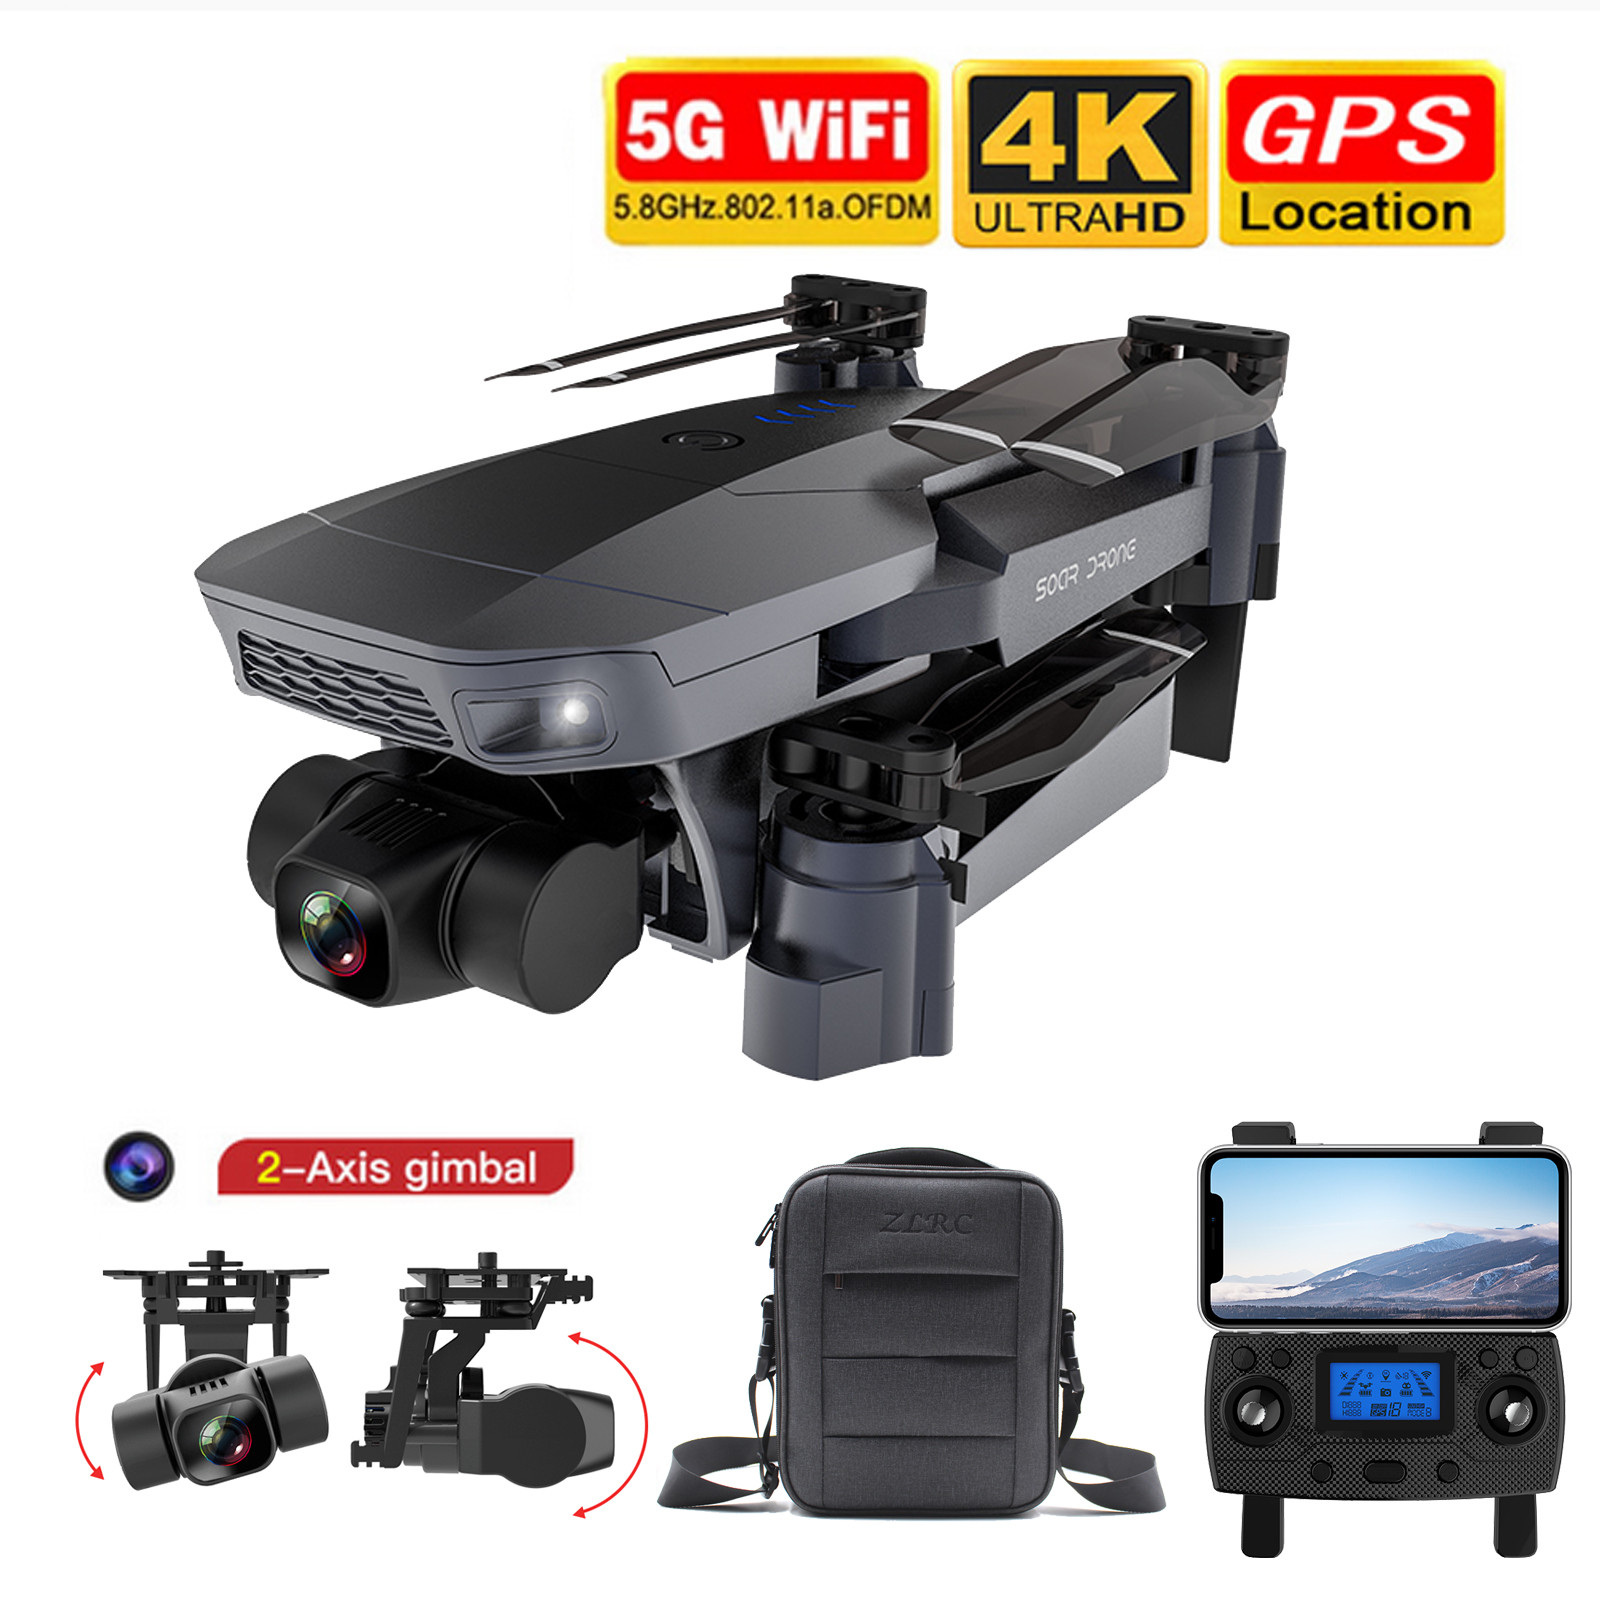 Ha3e242eb9443426bacb0574f2b115720H - 2020 New Sg907 Pro 5g Wifi Drone 2-axis Gimbal 4k Camera Wifi Gps Rc Drone Toy Rc Four-axis Professional Folding Camera Drones